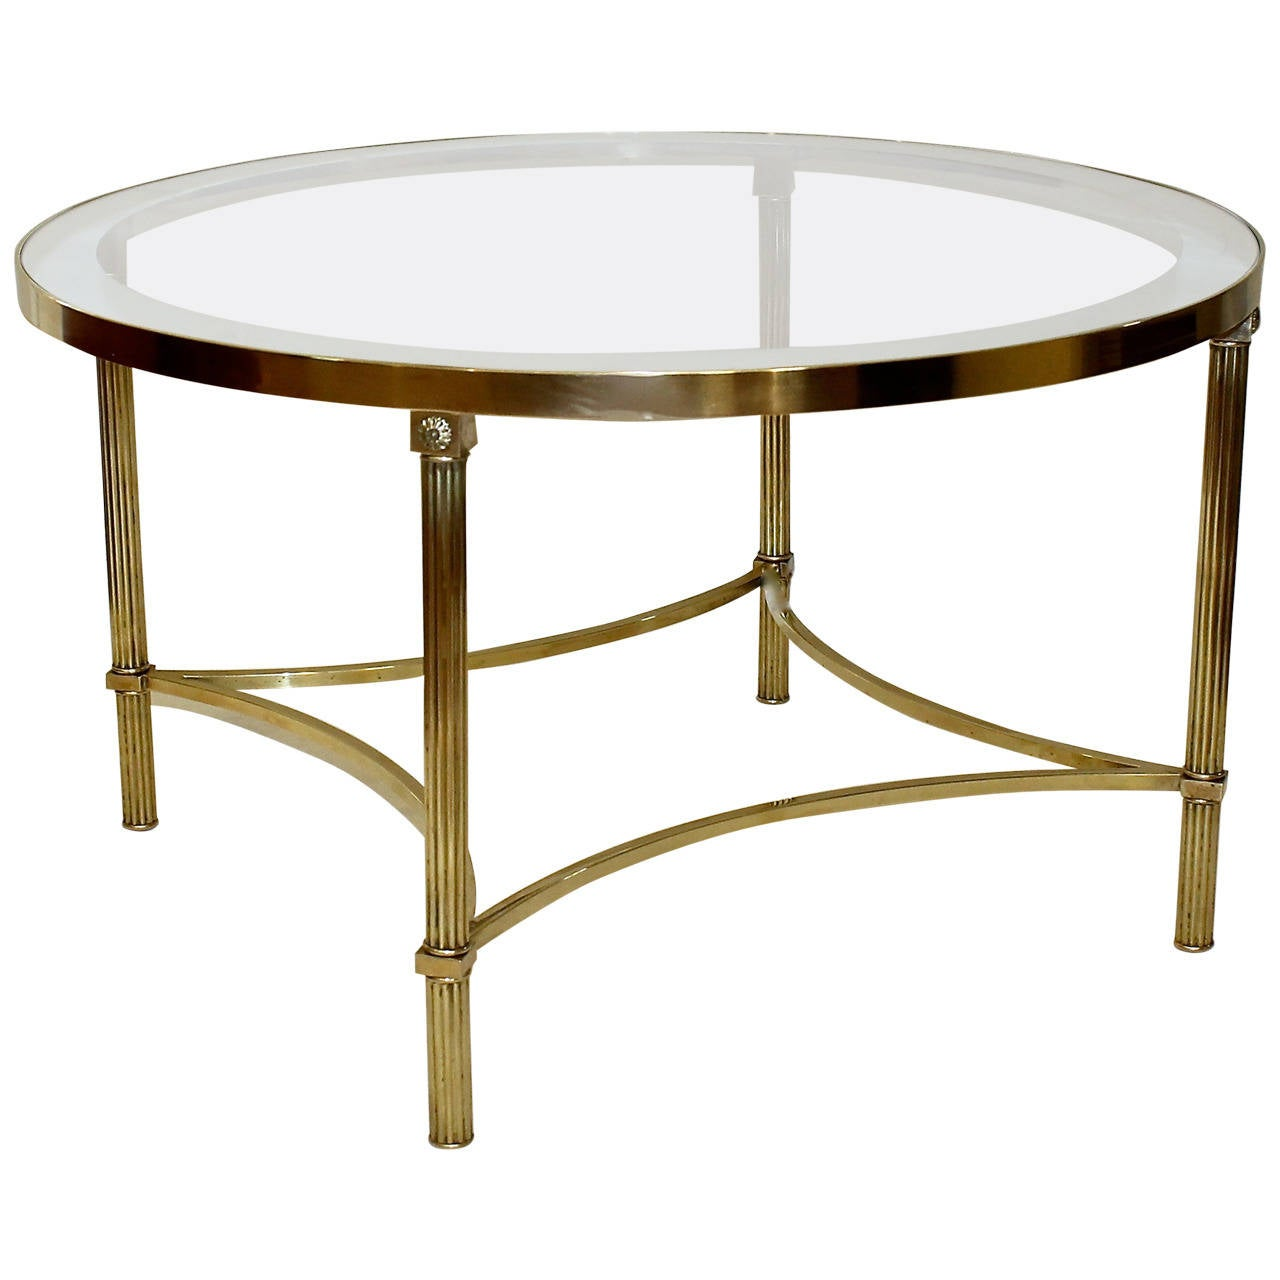 Jansen style round brass coffee or cocktail table at 1stdibs Brass round coffee table